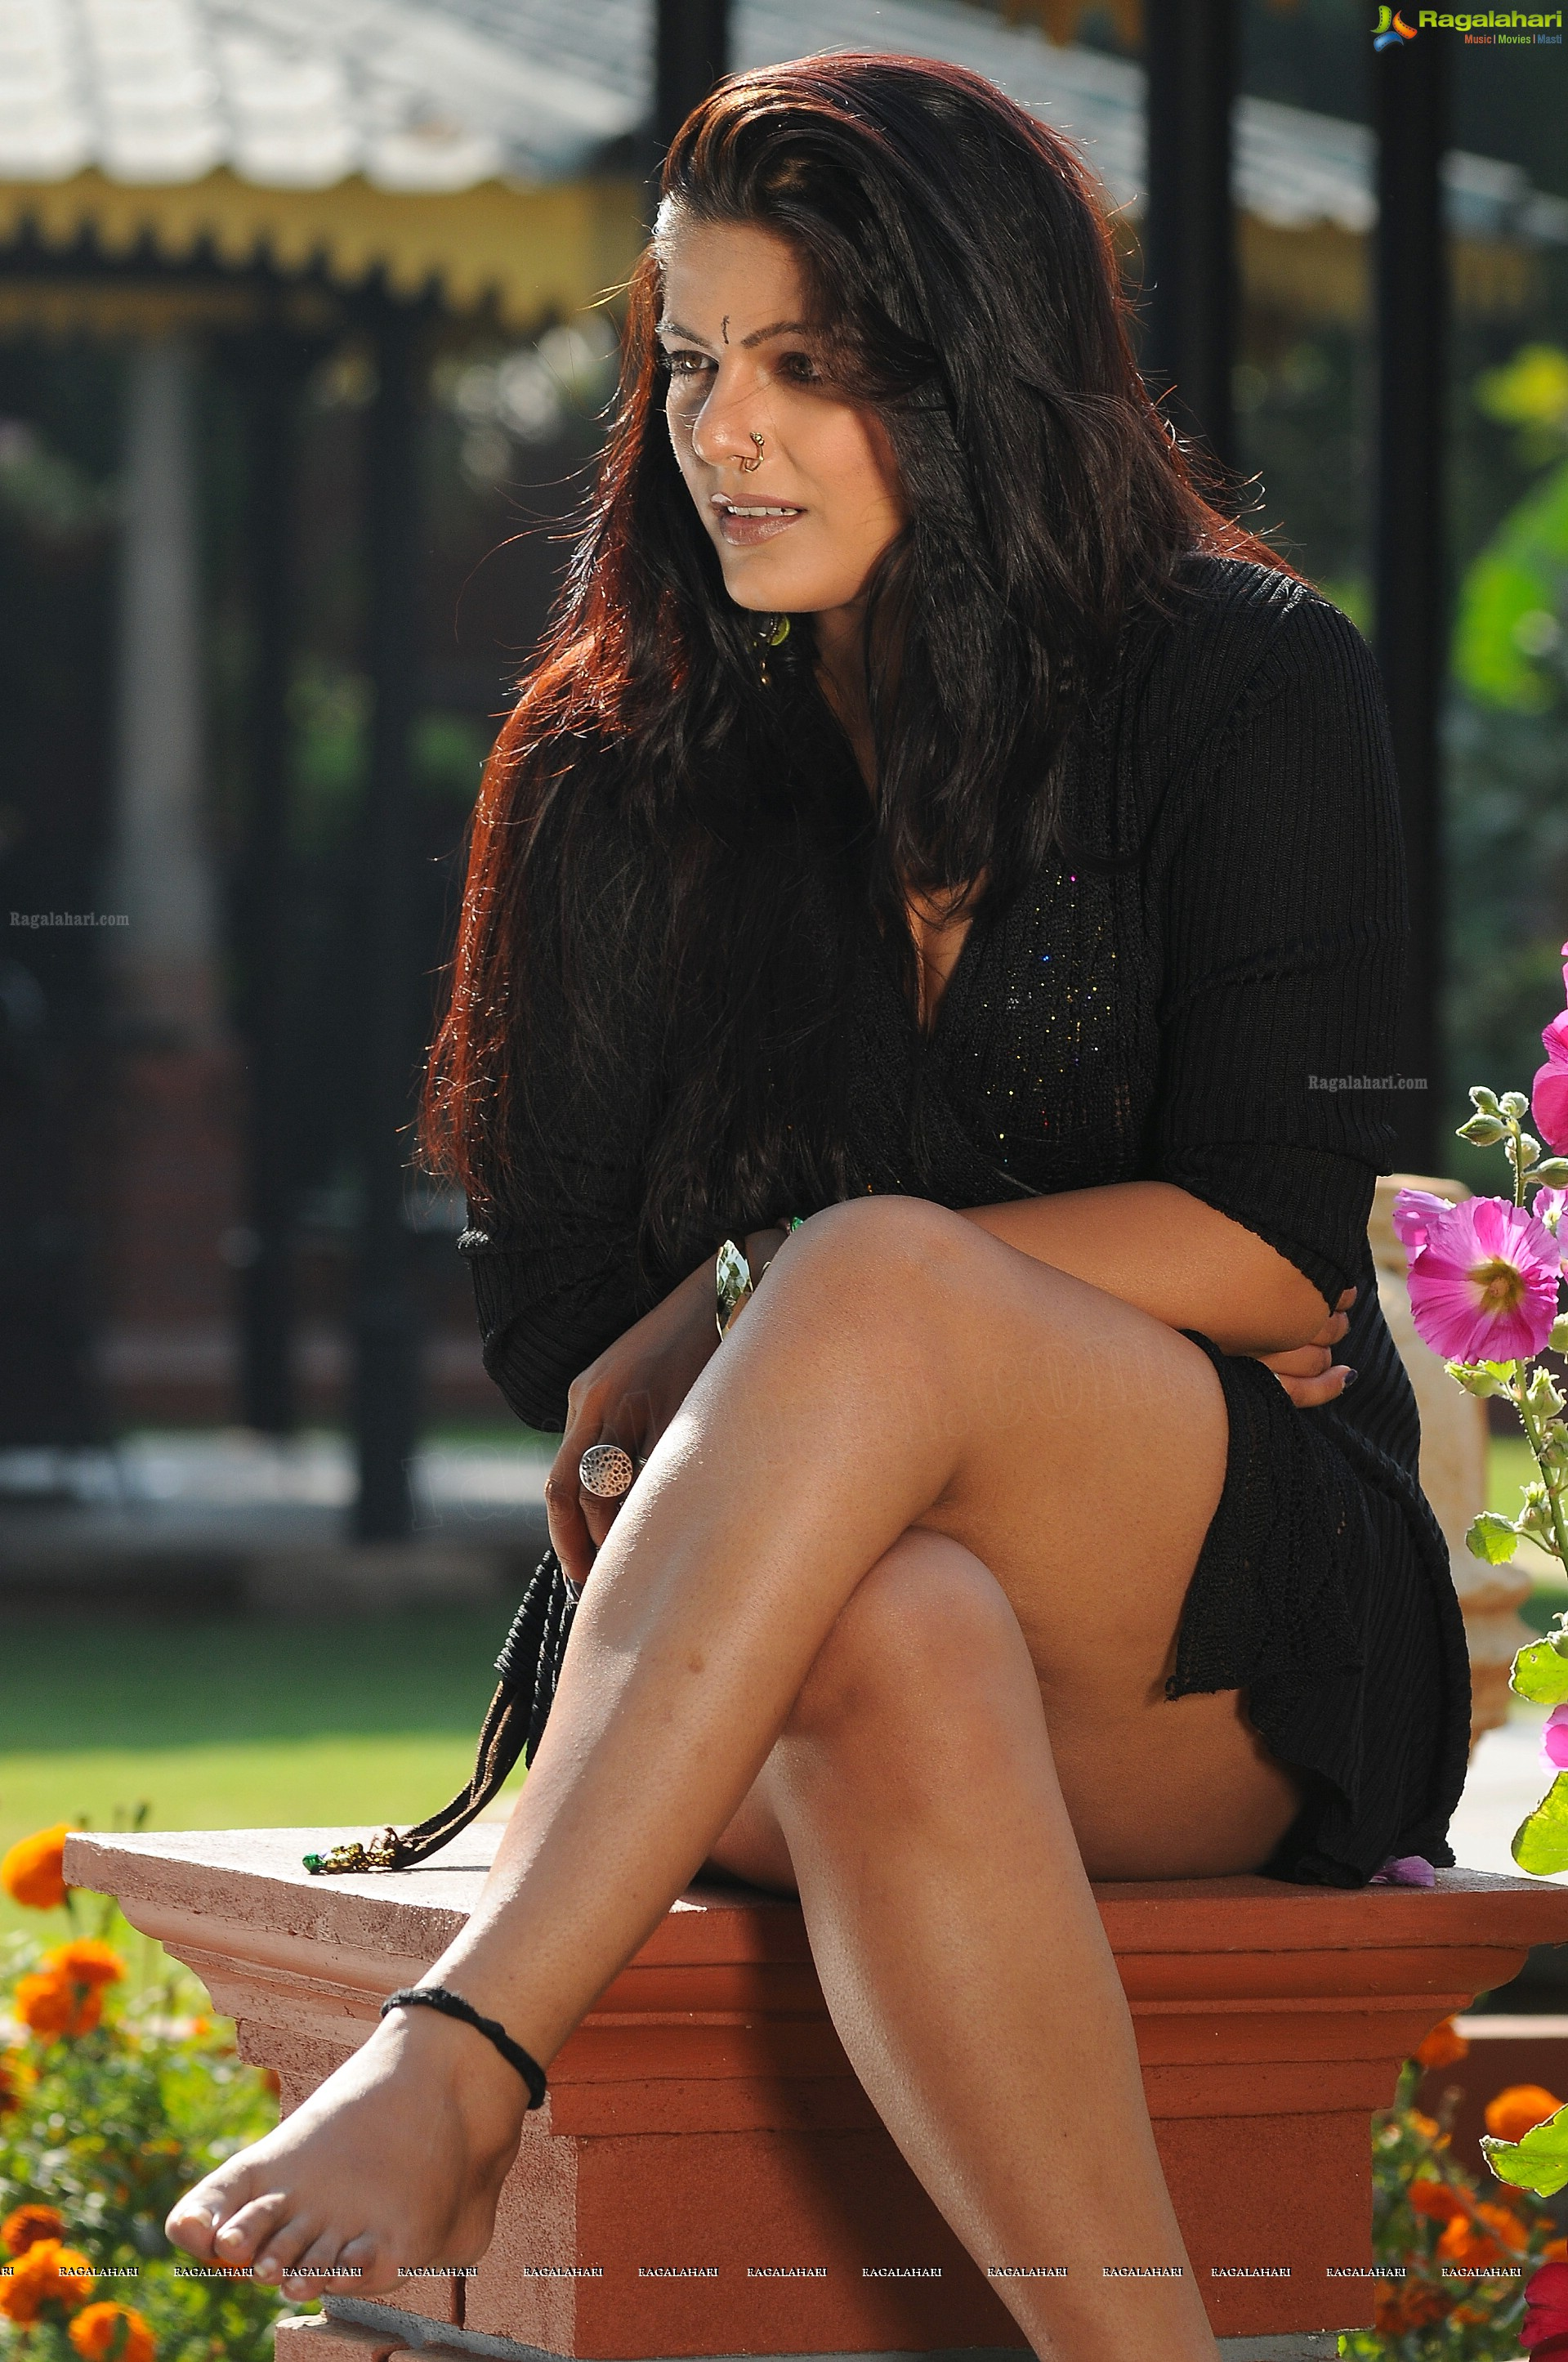 anajali dwivedi - sexy thighs - high quality pictures - hot as hell